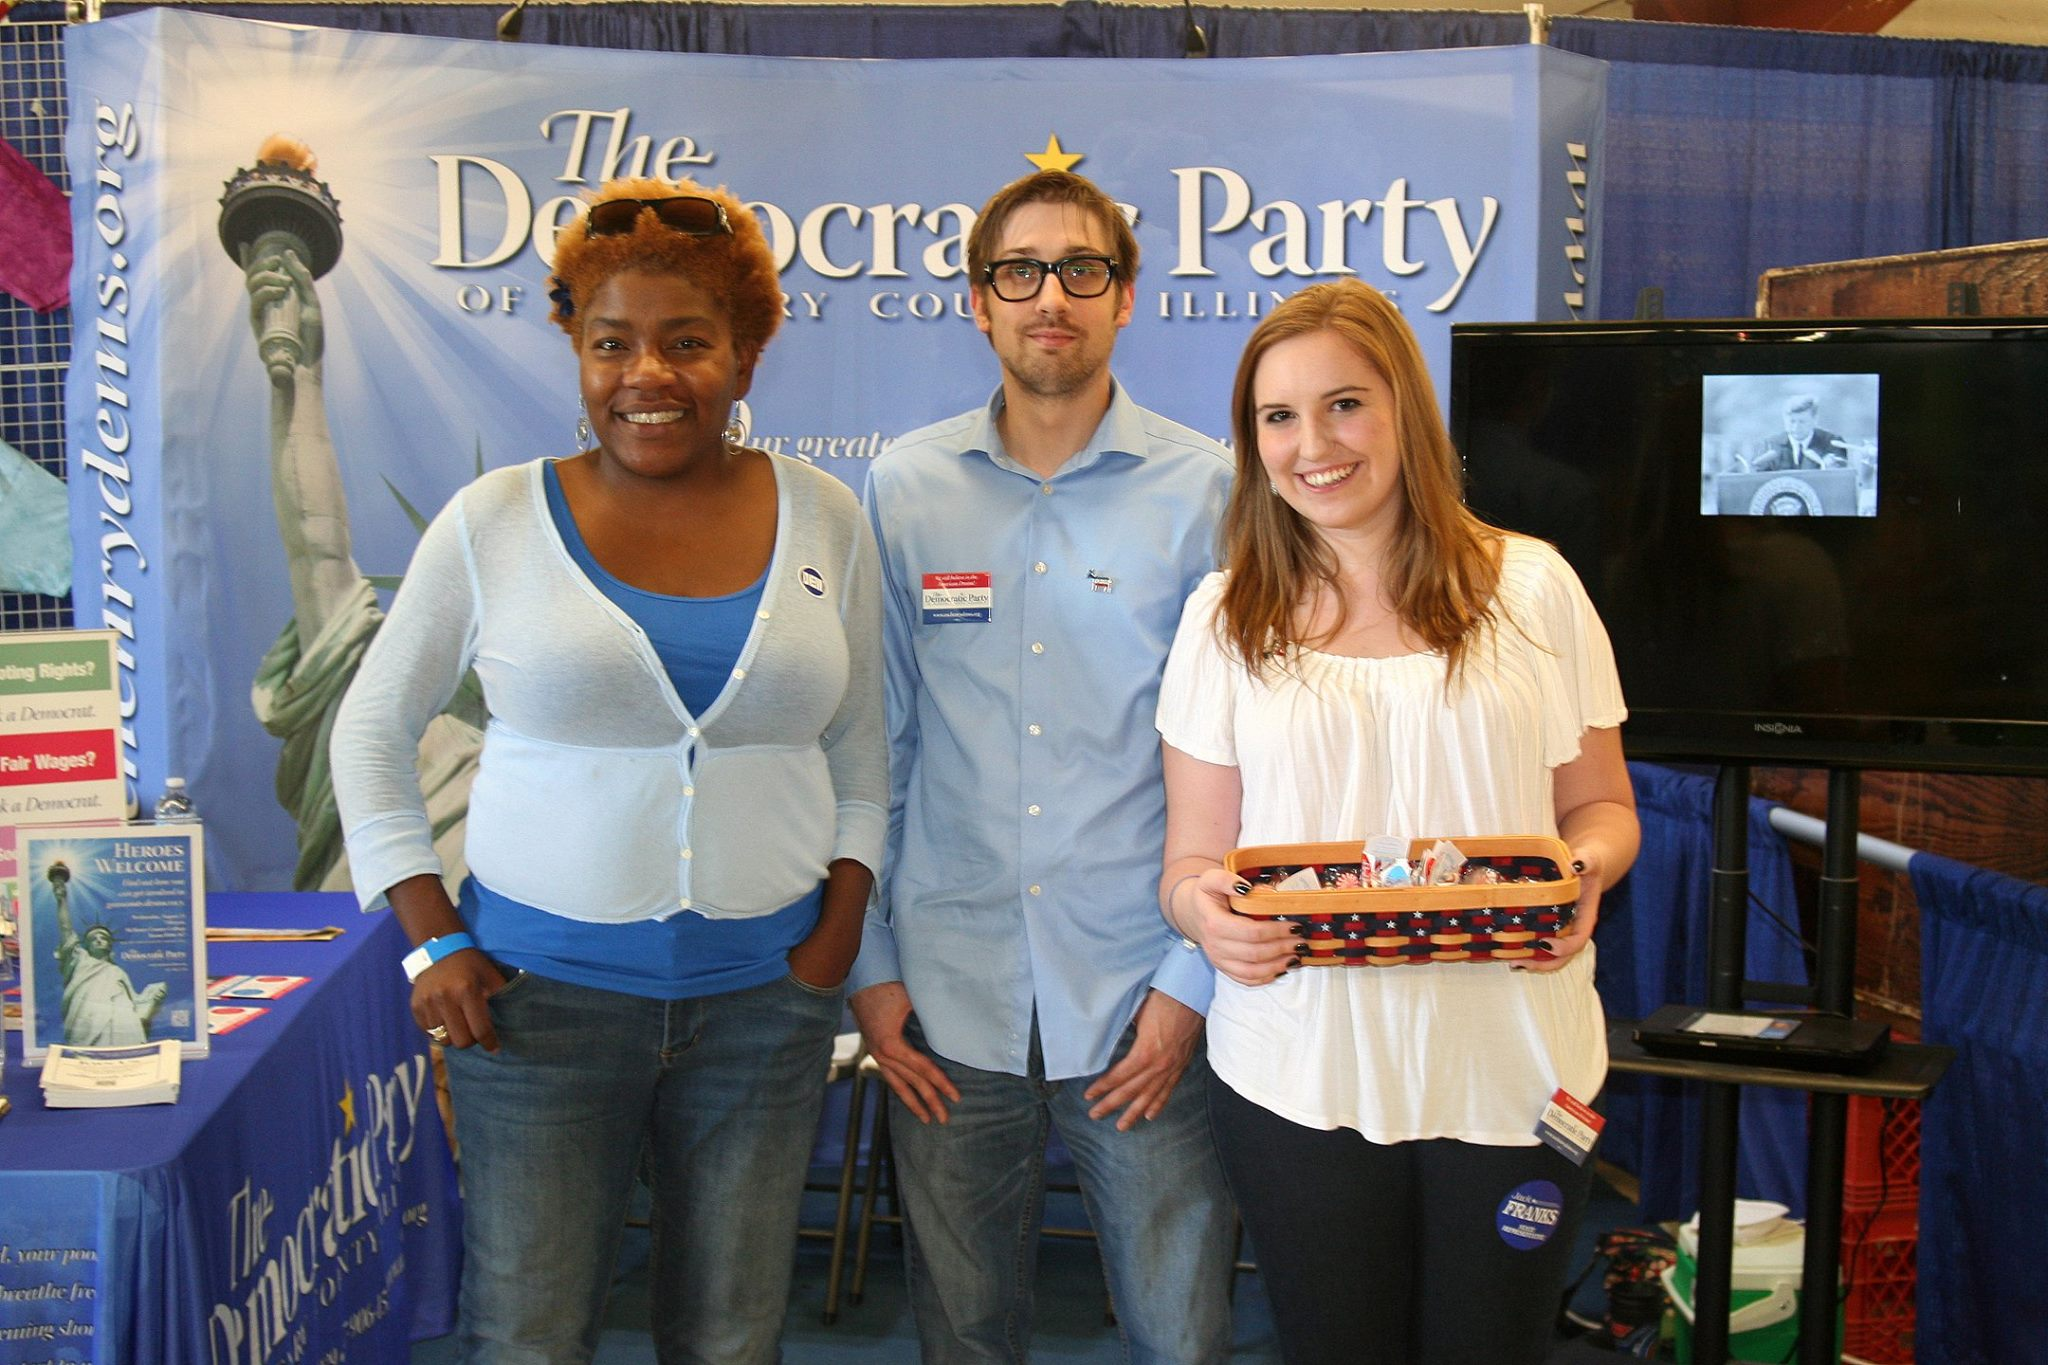 Democratic Party fair booth